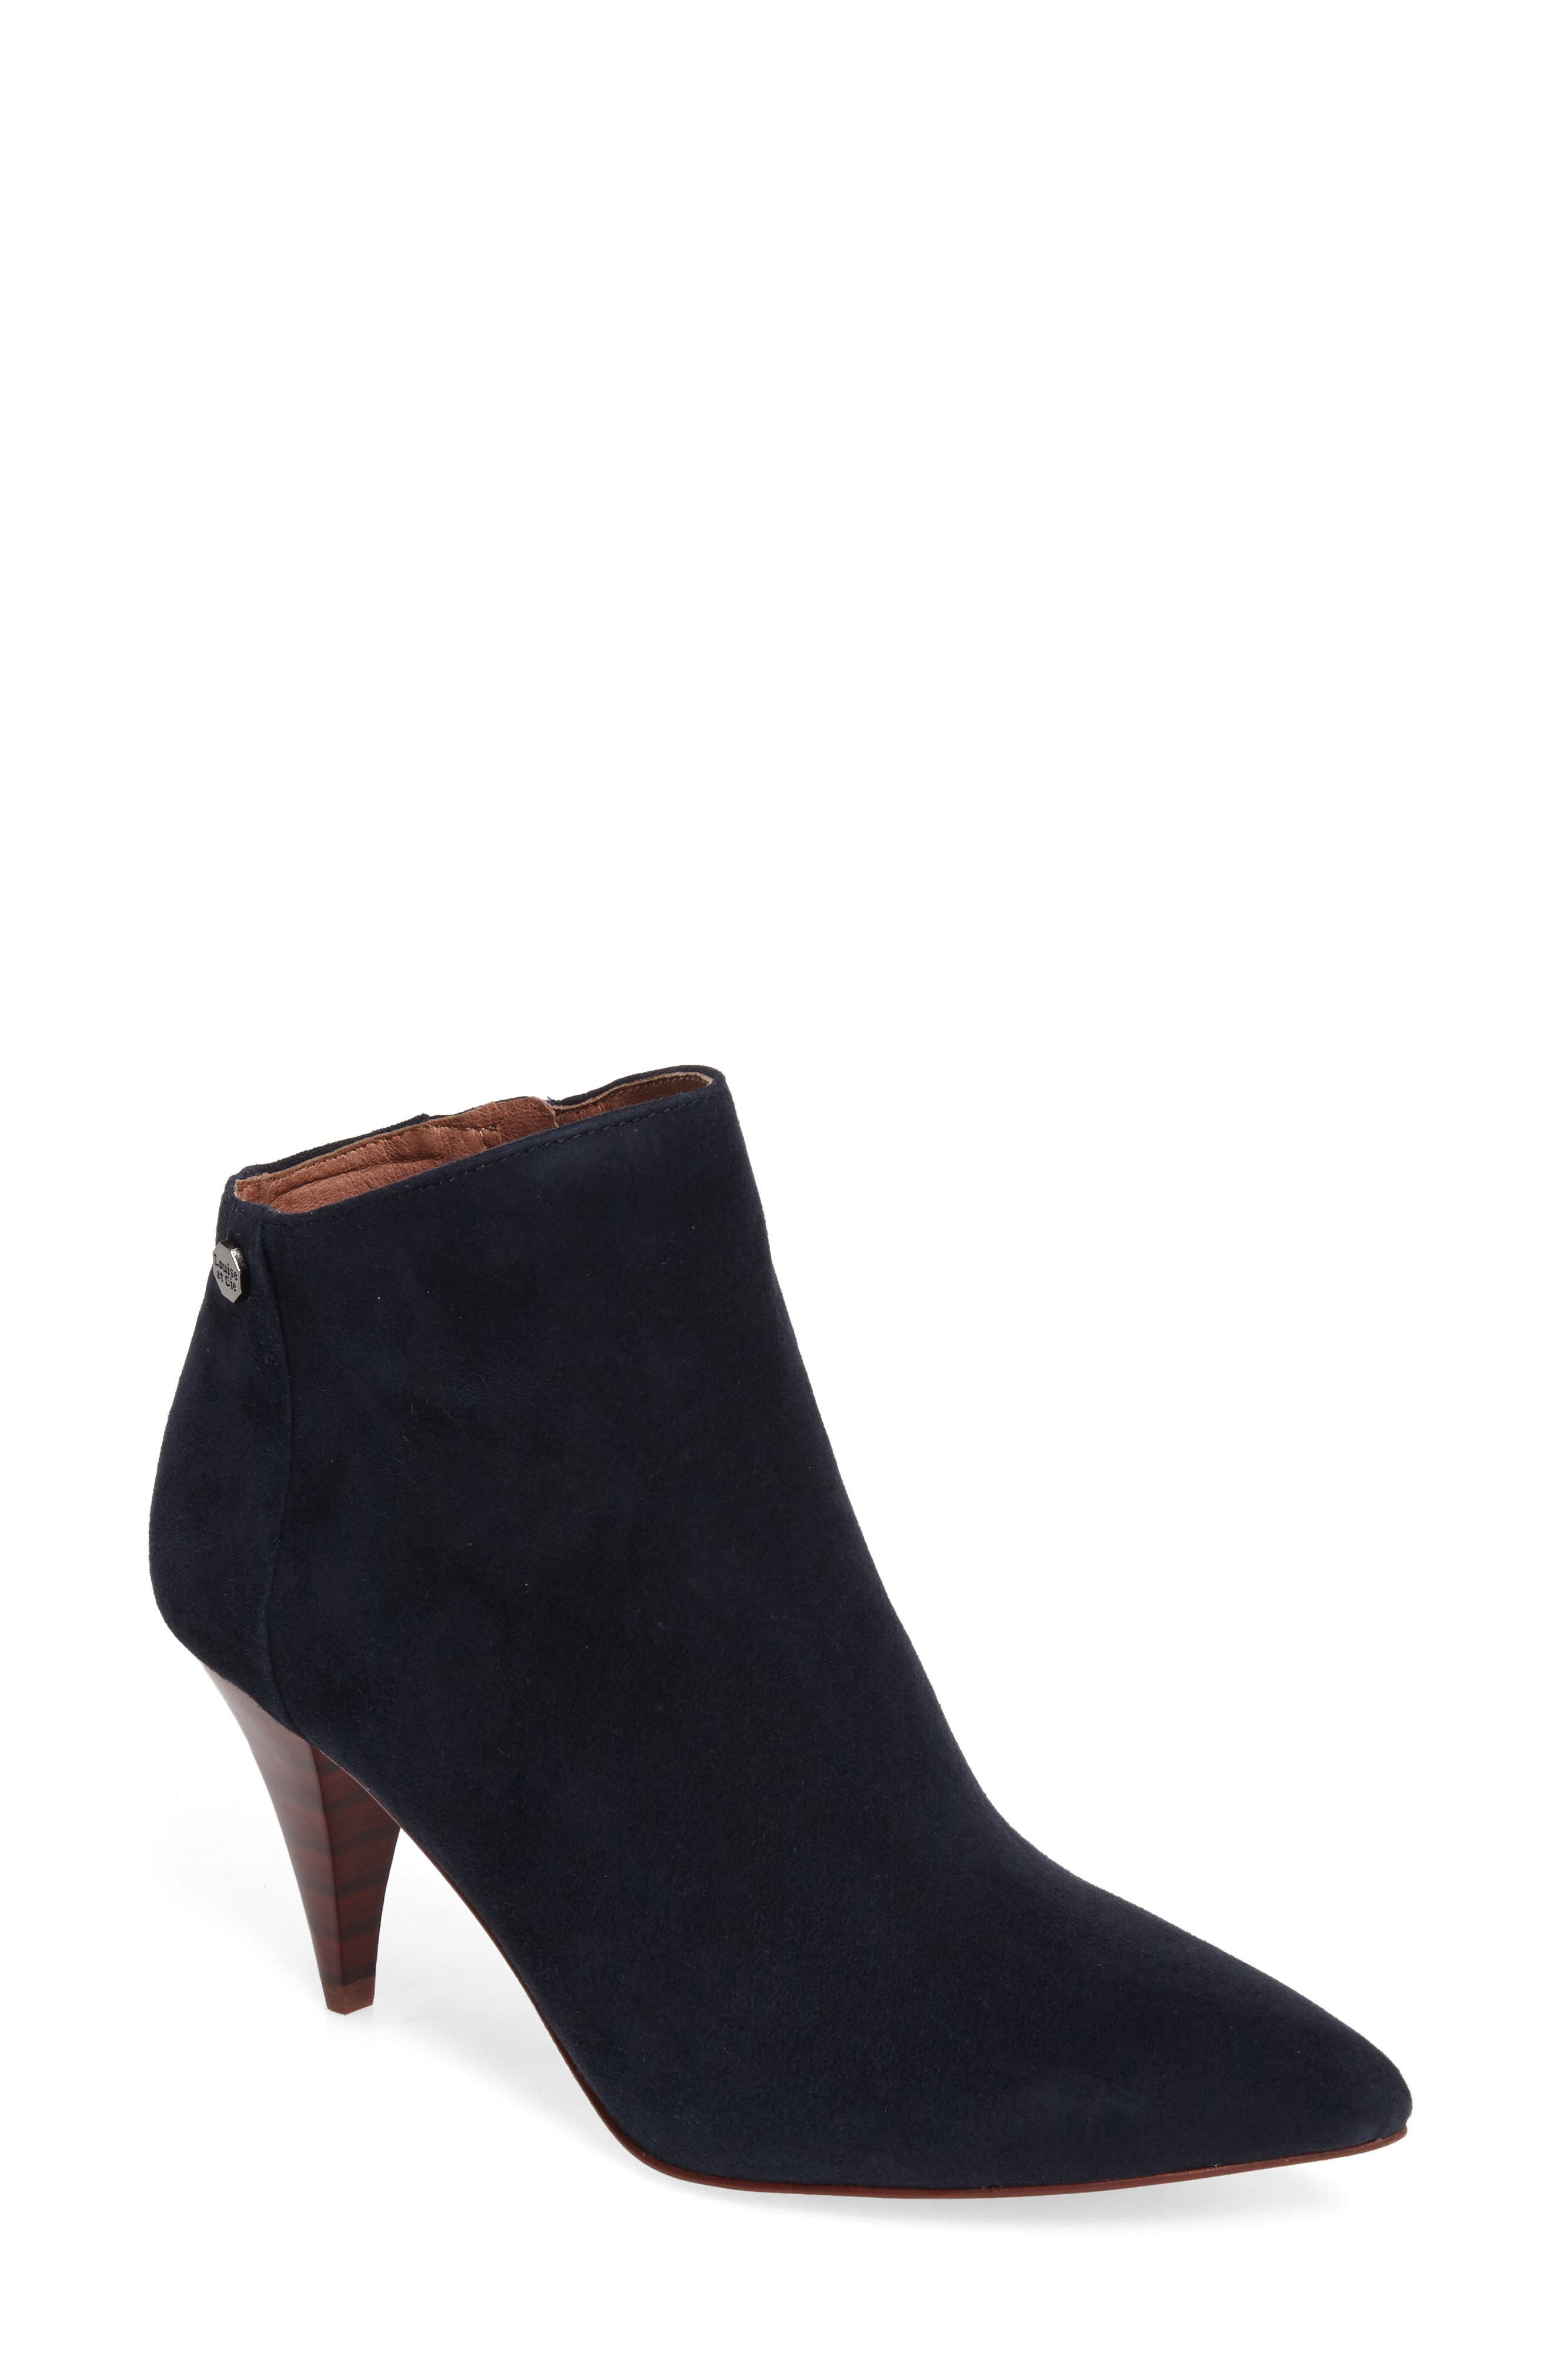 Alternate Image 1 Selected - Louise et Cie Warley Pointy Toe Bootie (Women)